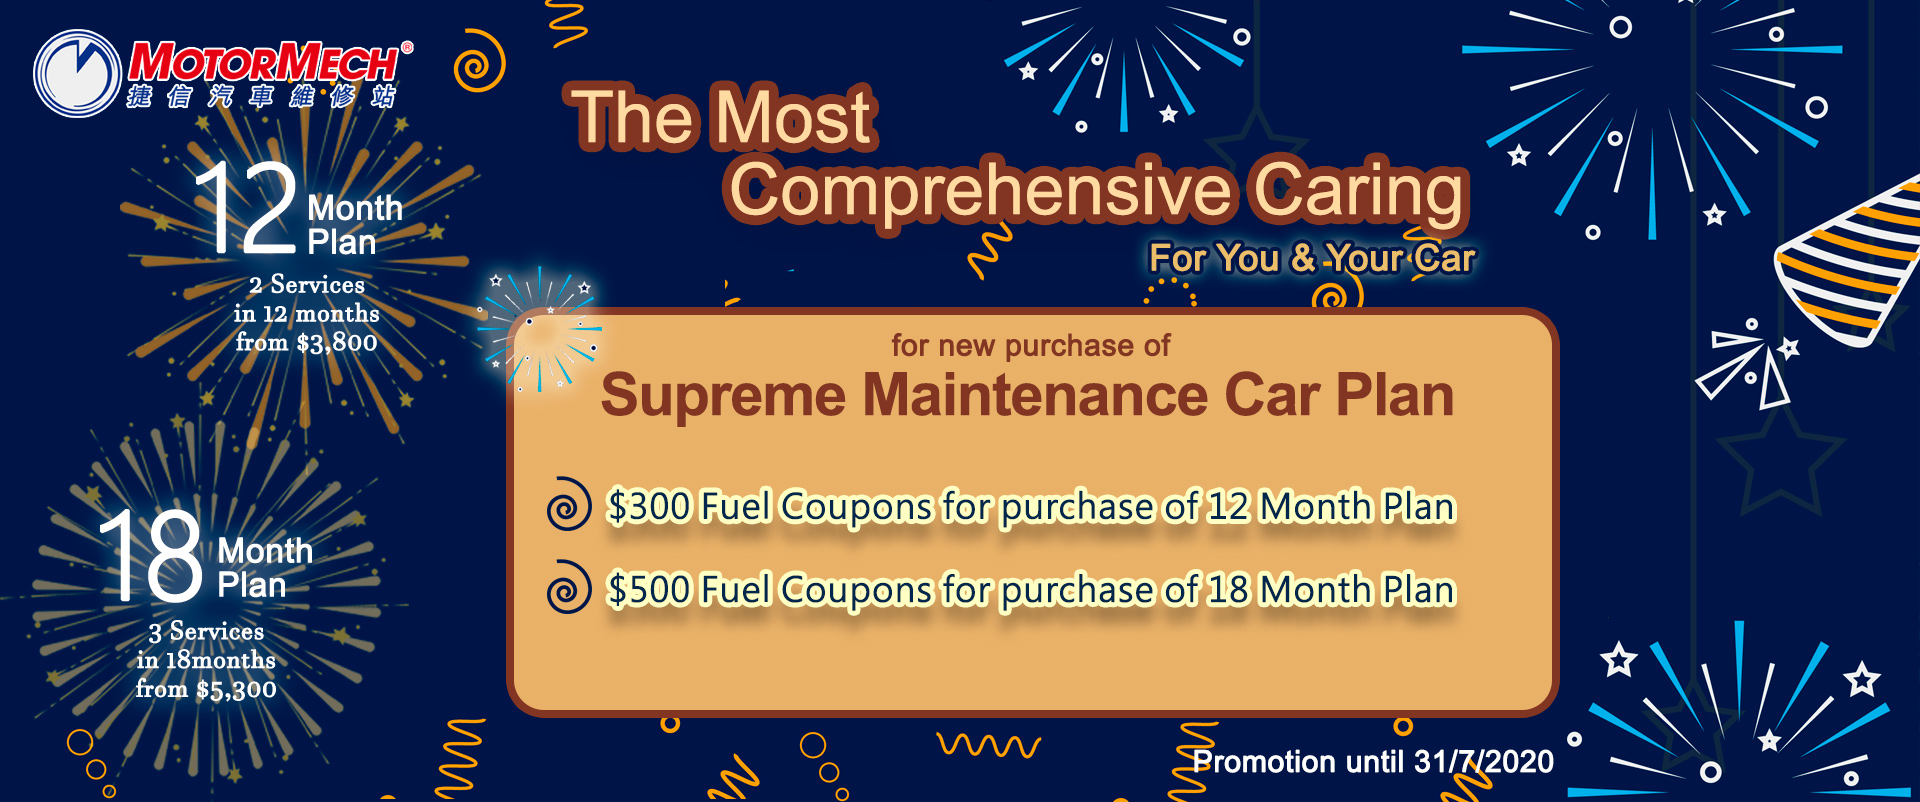 July Special Promotion - Supreme Maintenance Car Plan